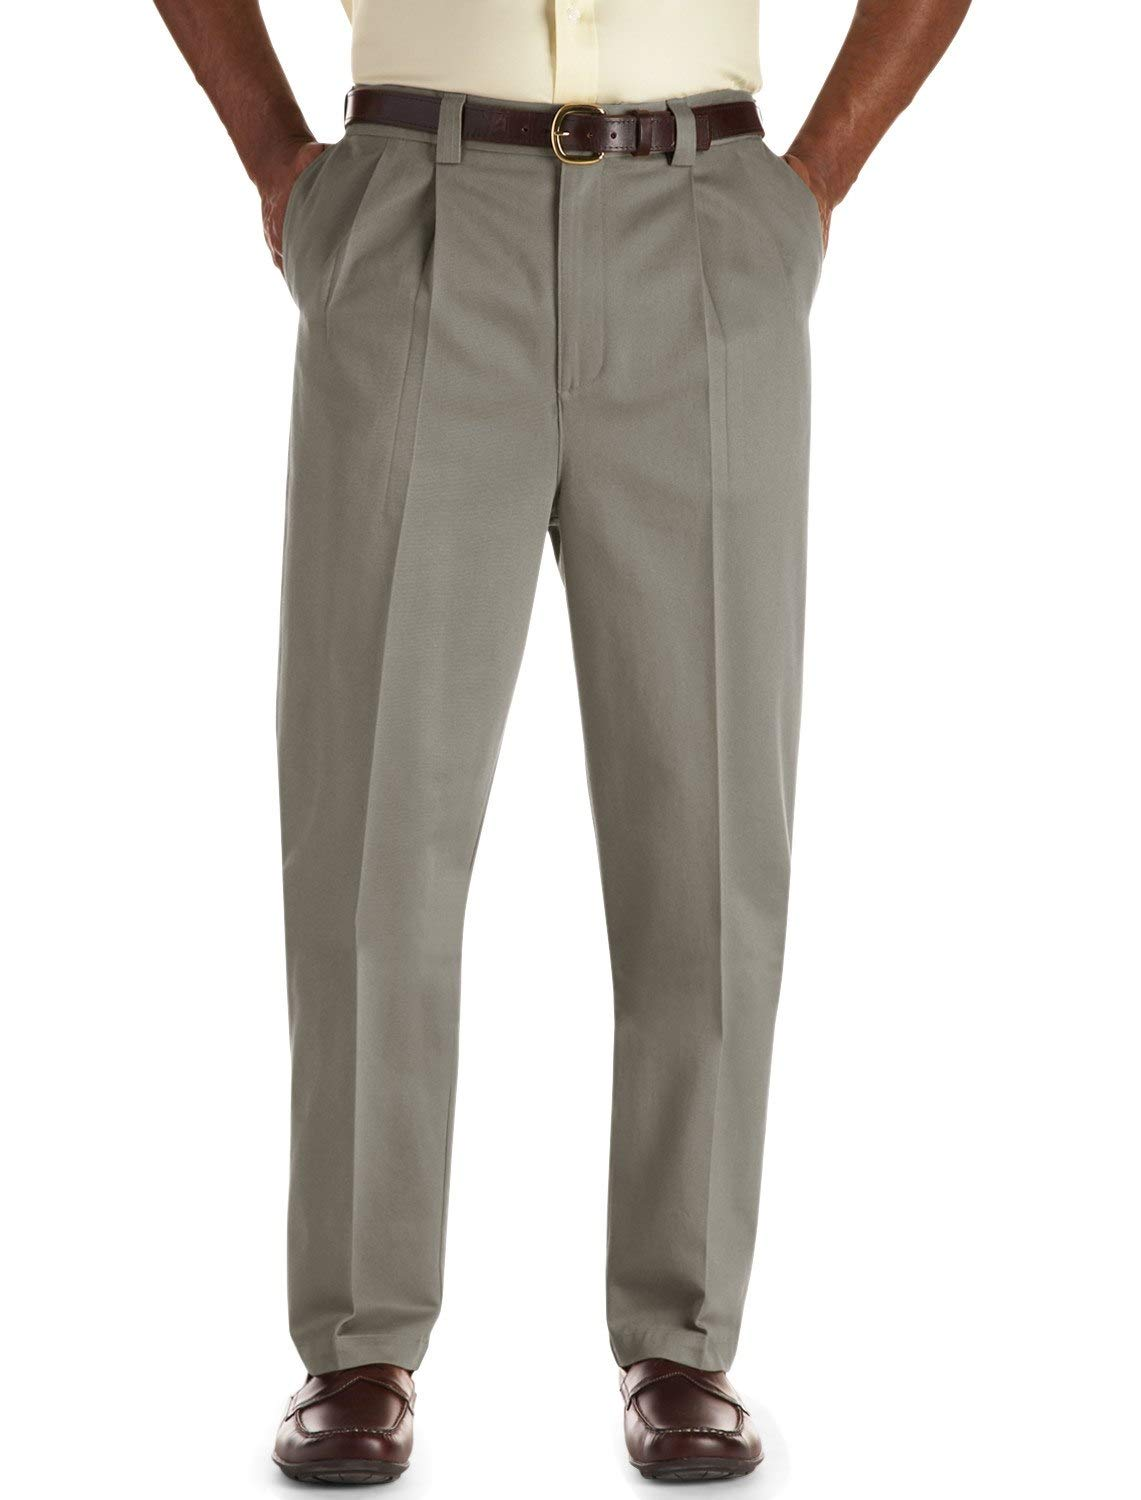 Oak Hill by DXL Big and Tall Pleated Premium Stretch Twill Pants, Olive, 48R 30